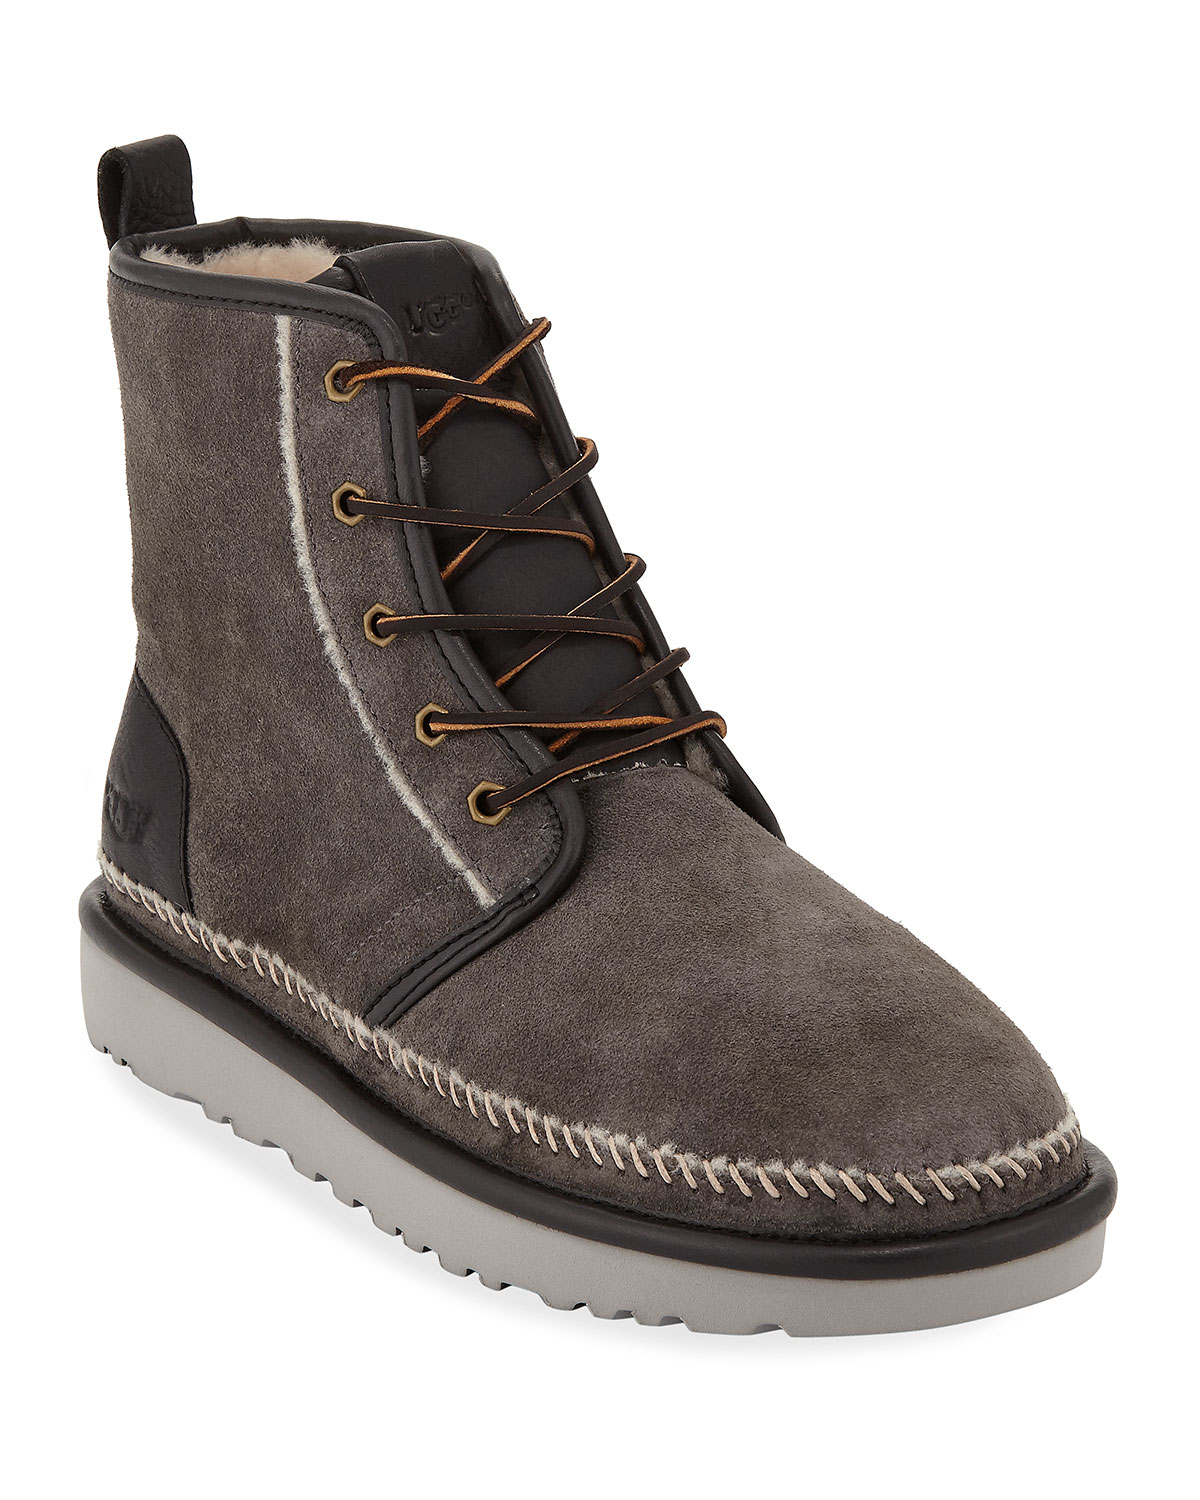 Men's Harkley Stitch Suede Boots